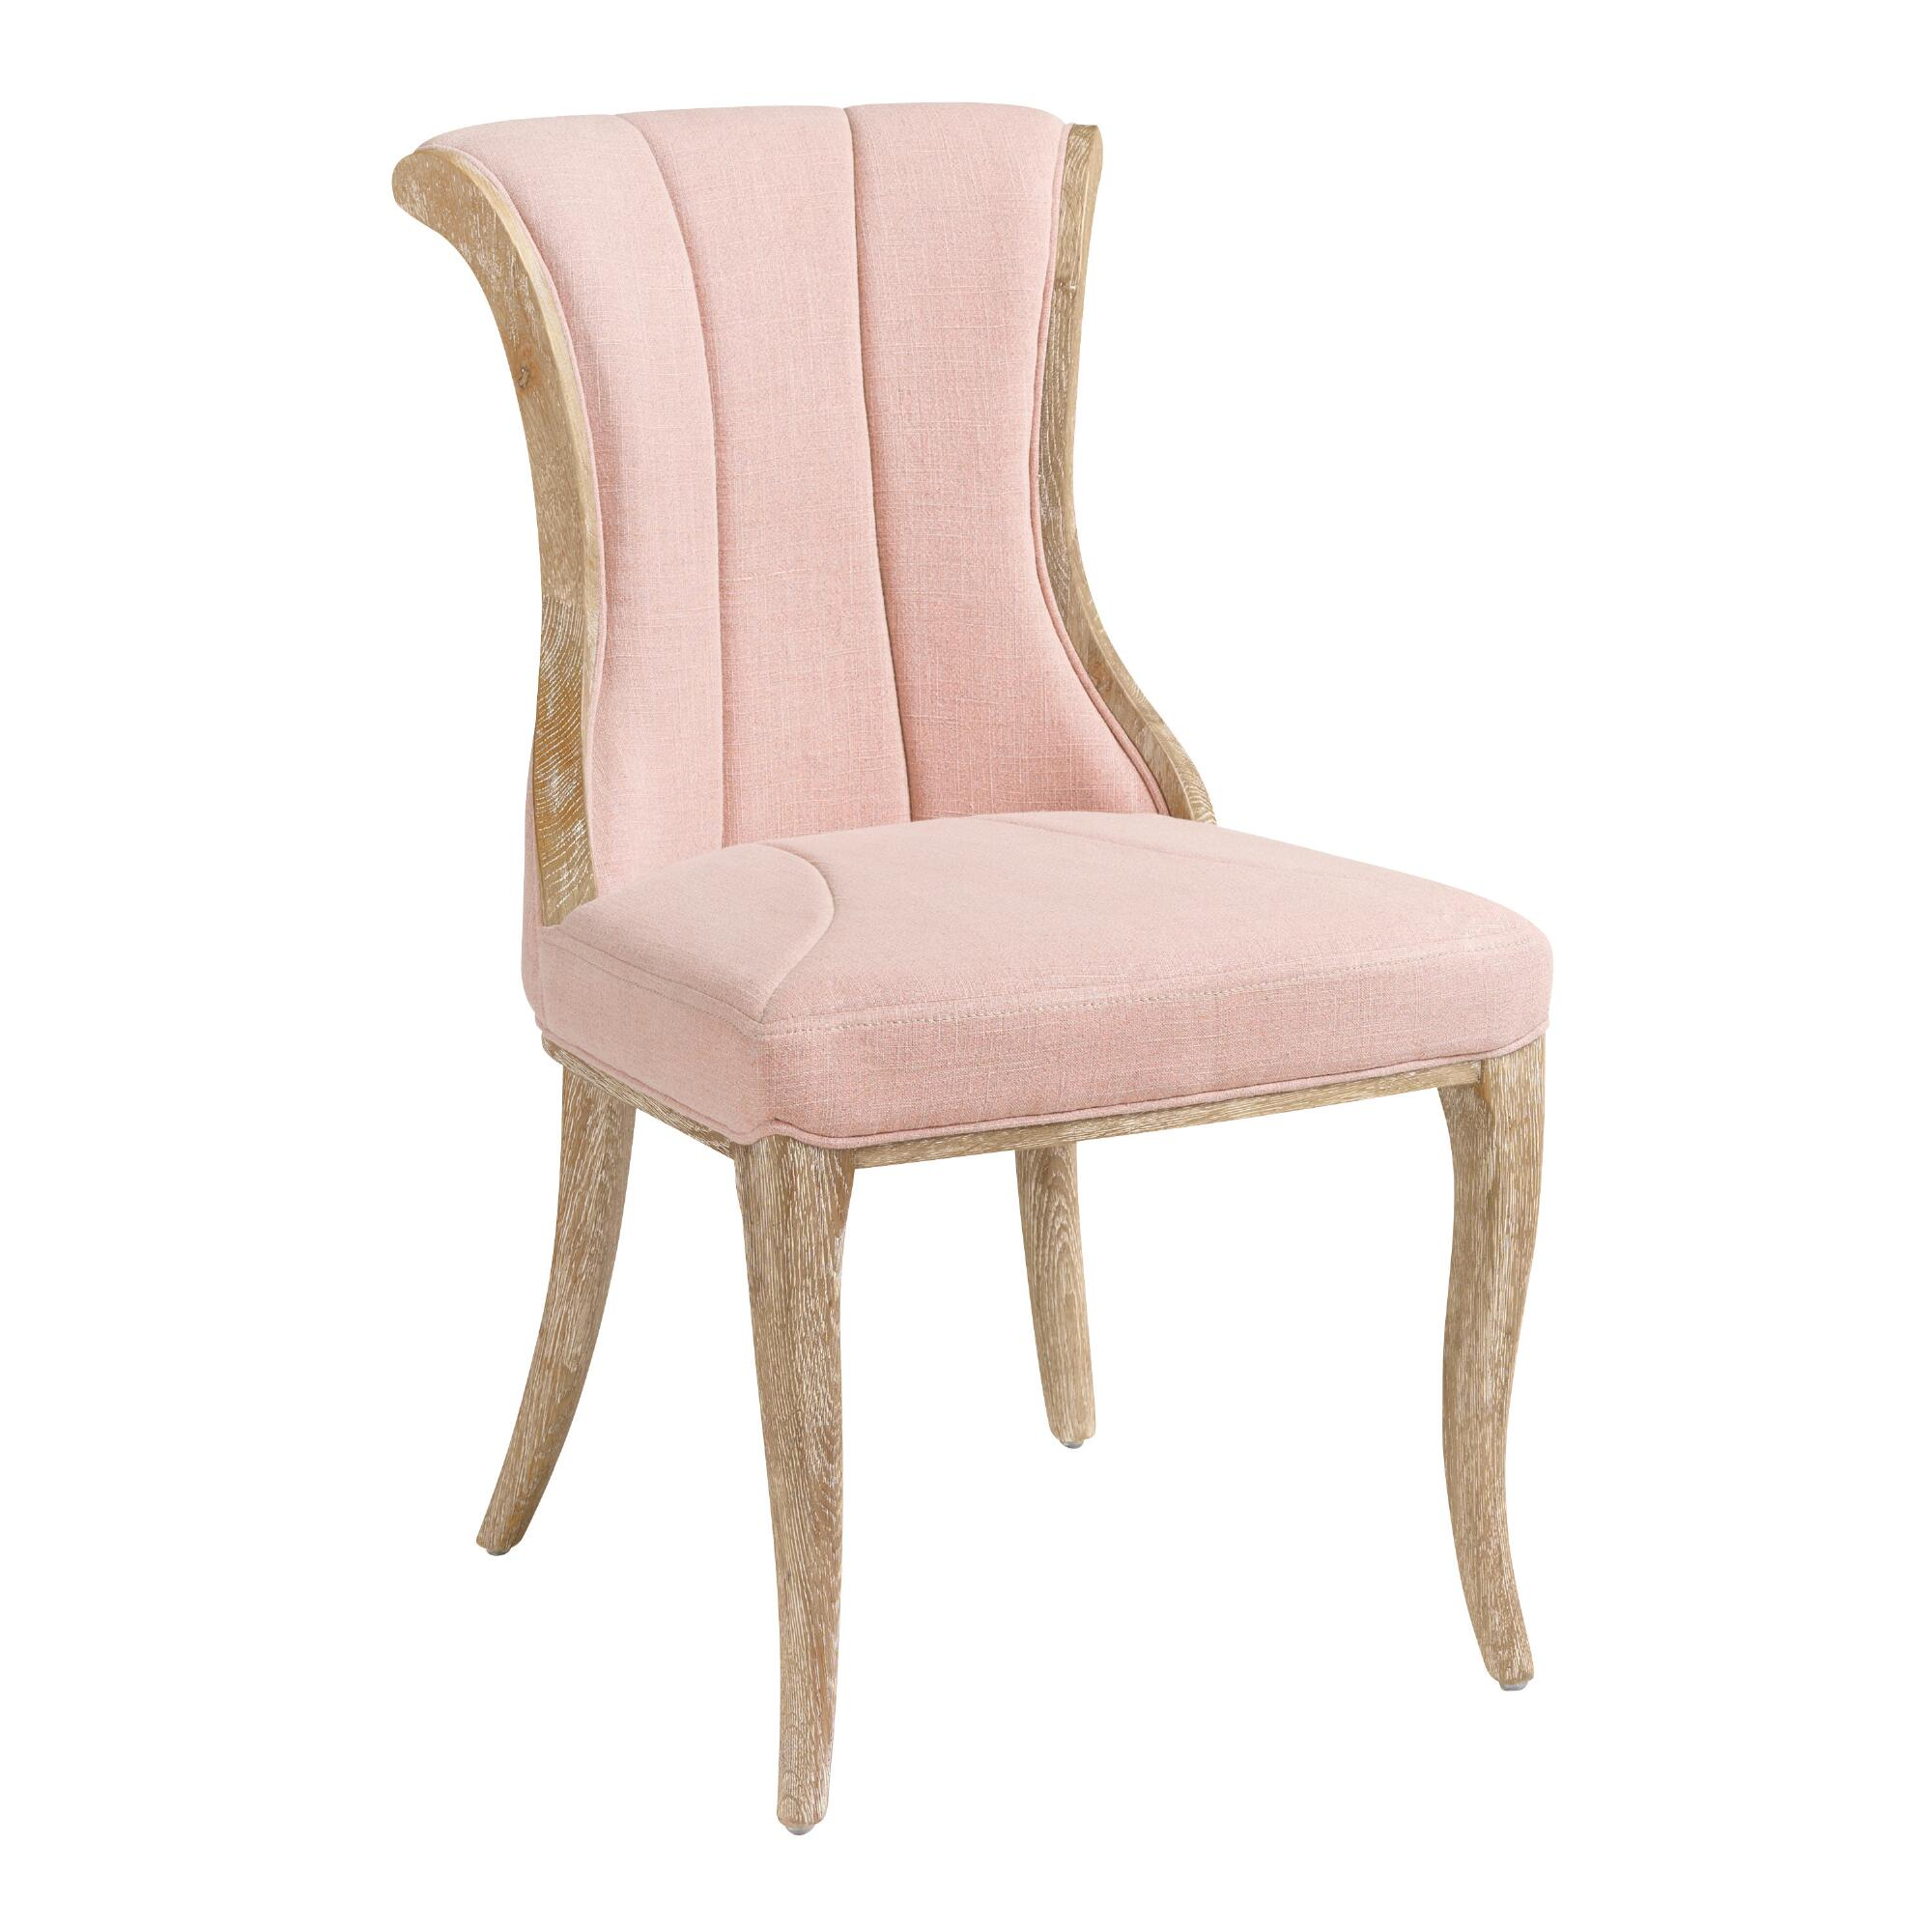 Blush channel back dining chairs set of 2 world market